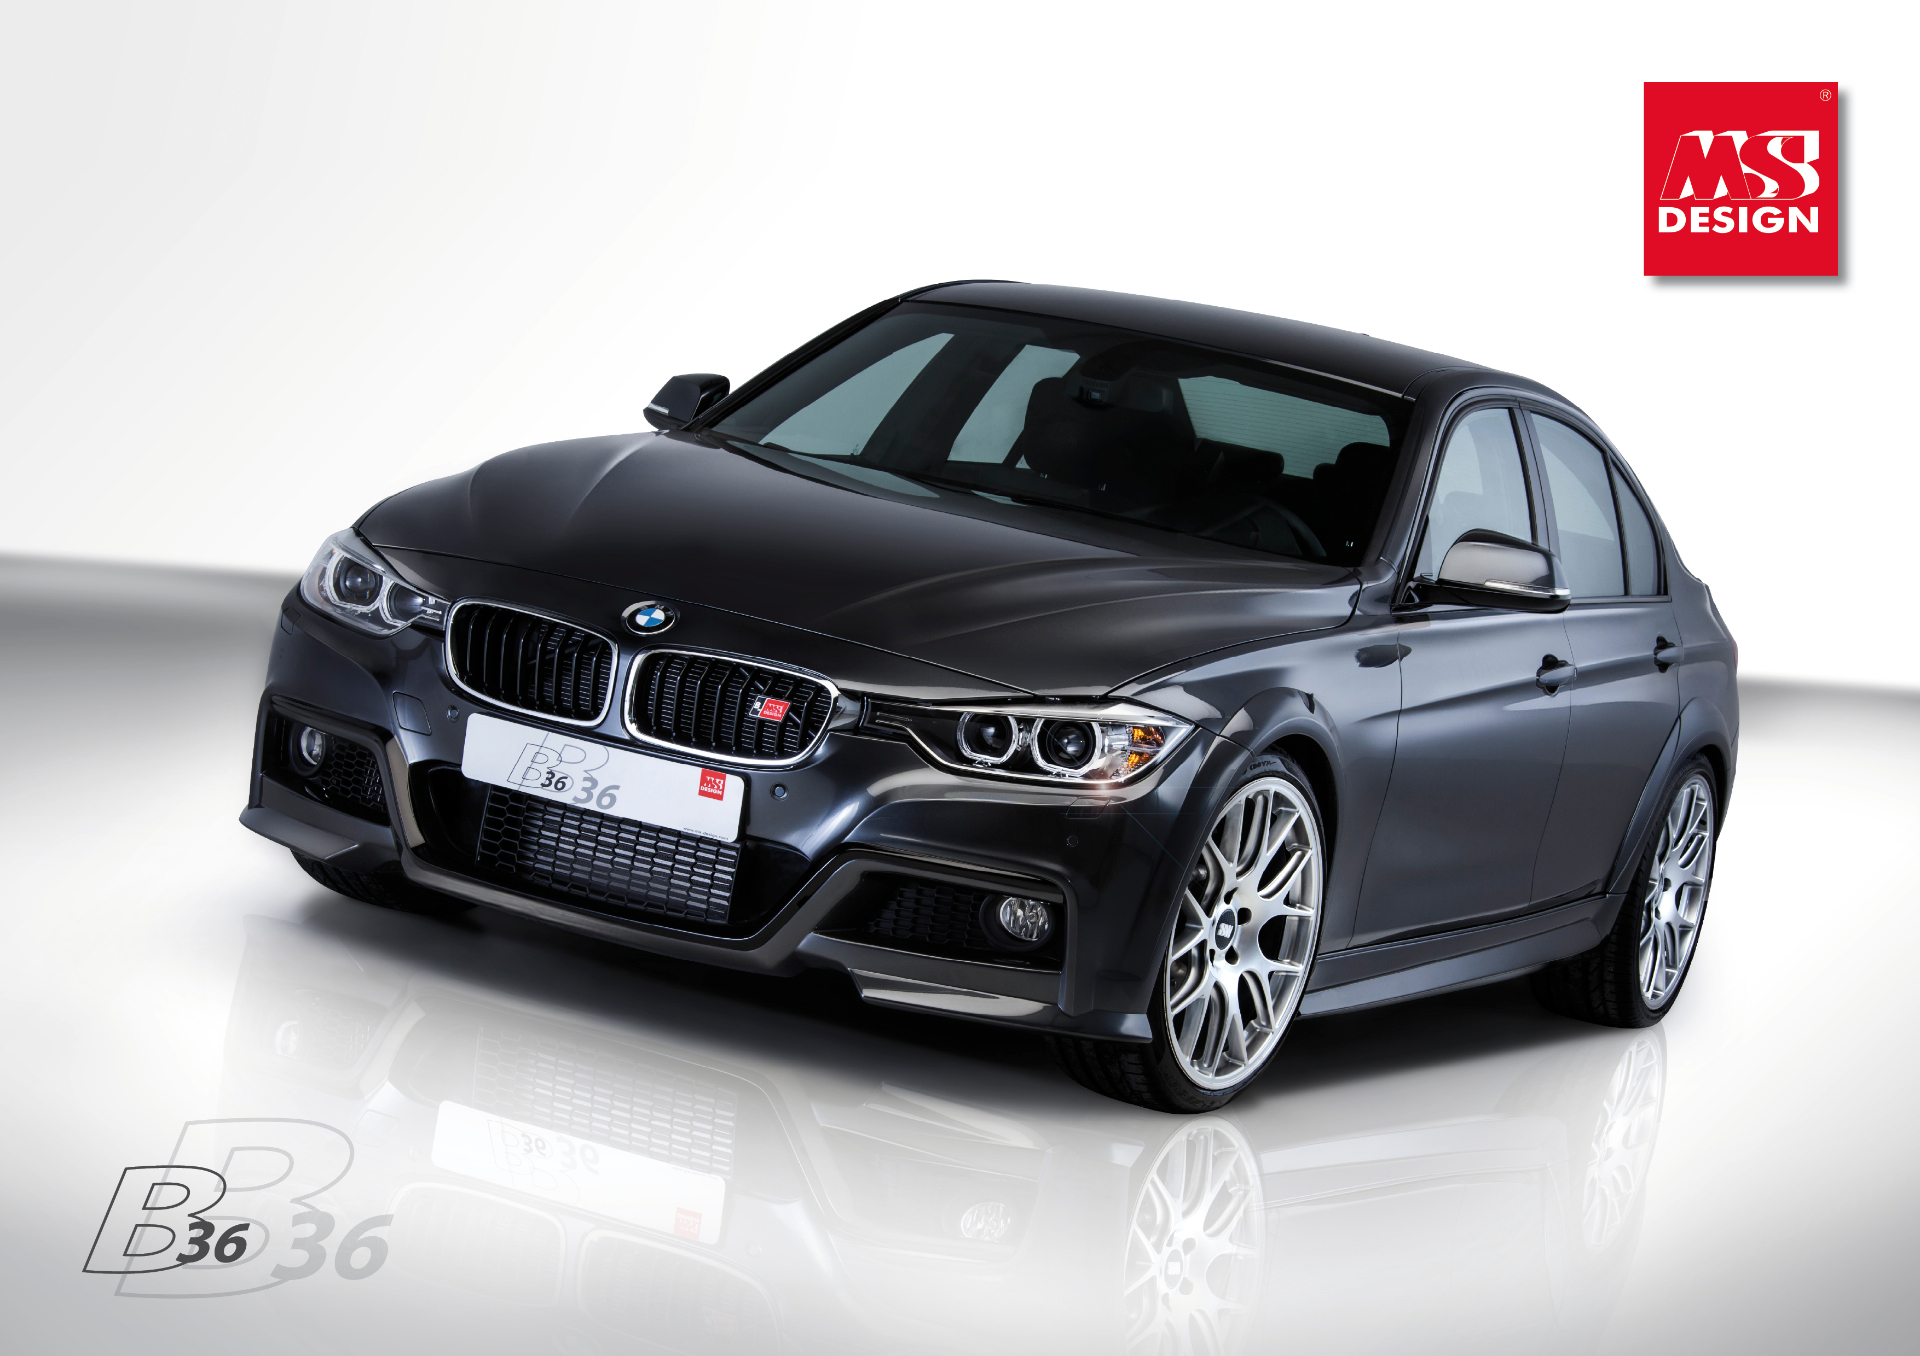 bmw f30 335i is b36 at ms design autoevolution. Black Bedroom Furniture Sets. Home Design Ideas